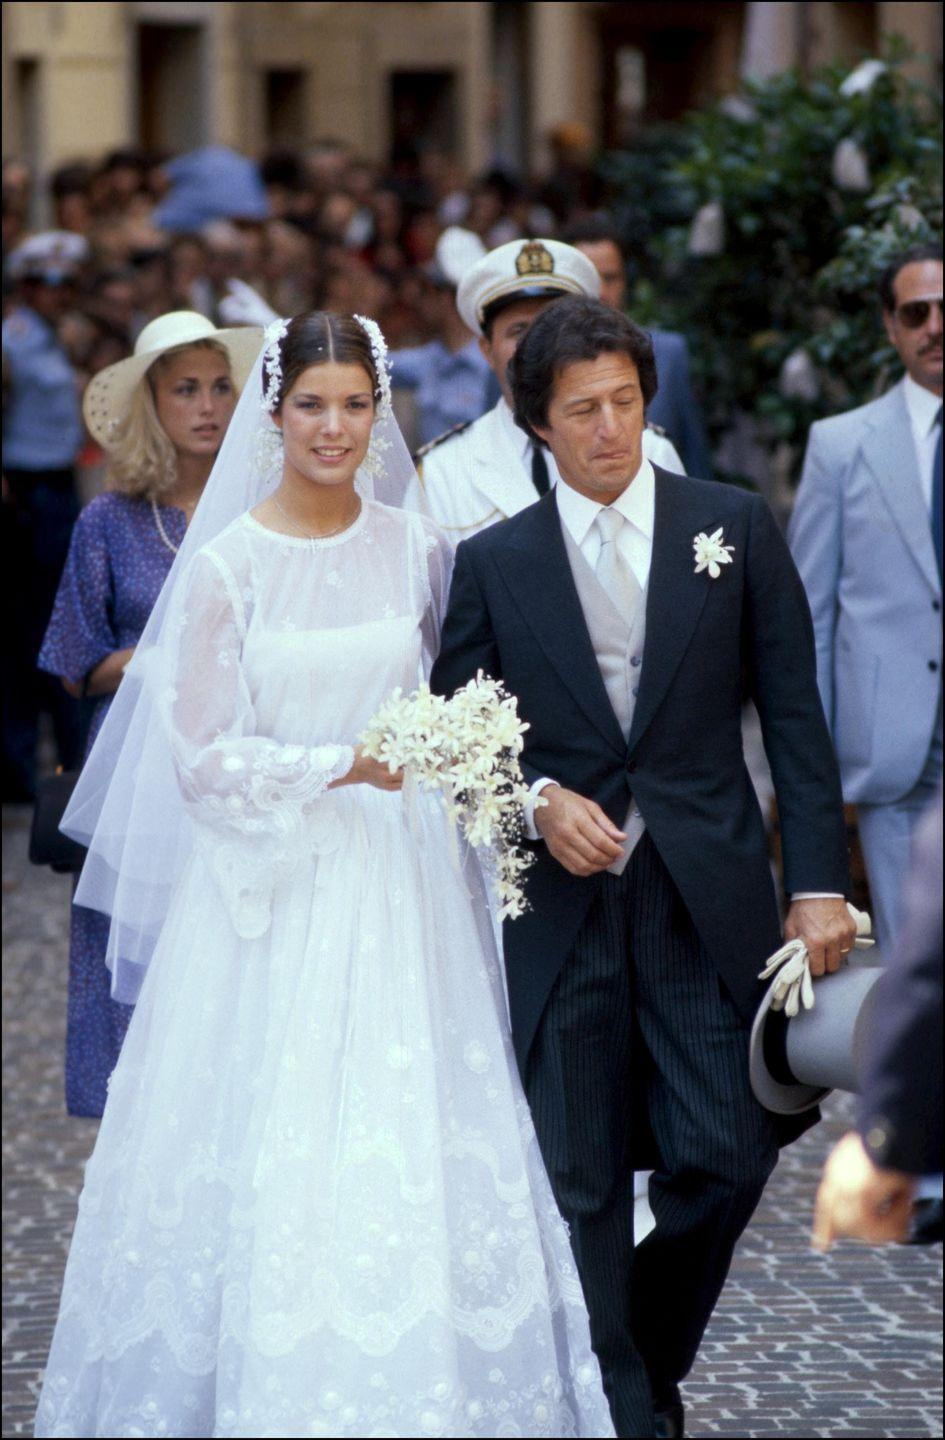 <p>The world waited for a glimpse of the dress the Princess would wear for her 1992 nuptials to Philippe Junot — after all, her mother Grace Kelly's high-neck gown still to this day sways bridal trends. Her sheer embroidered, bell-sleeved gown did not disappoint.</p>